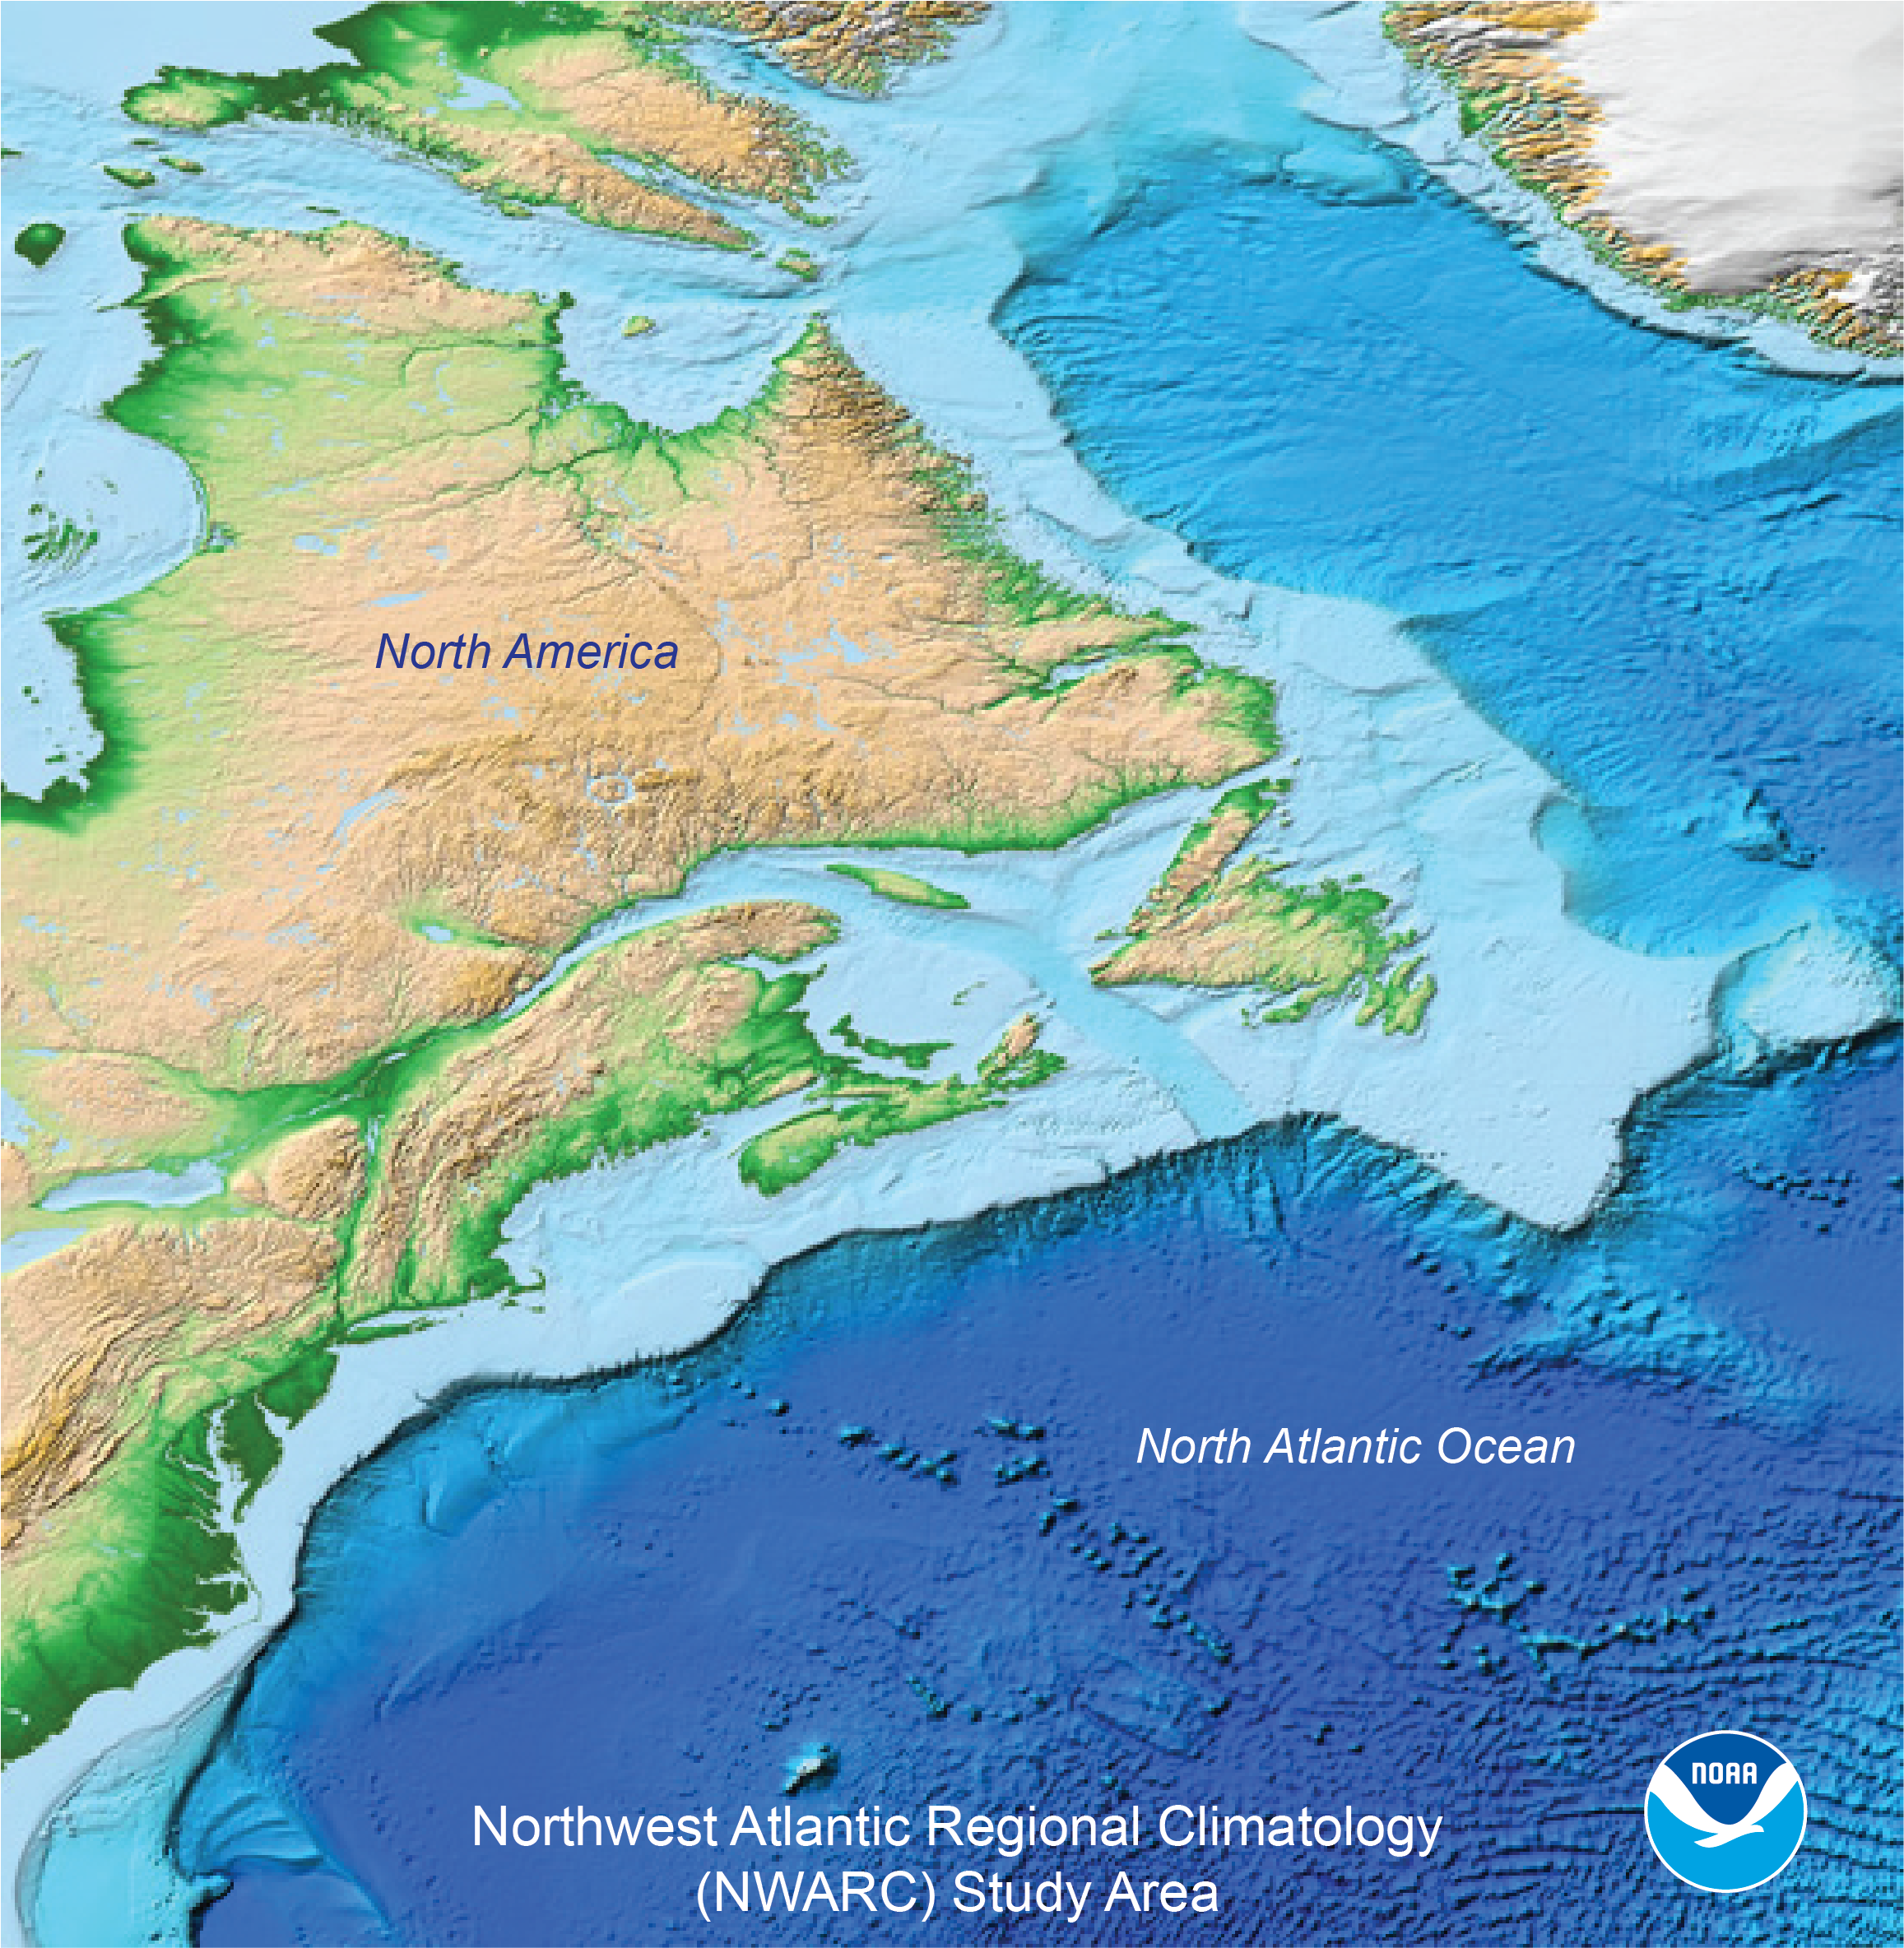 photo: NOAA NCEI;desc: The NWARC climatology was developed from a data-rich region off the coasts of the United States, Canada, and Greenland.;